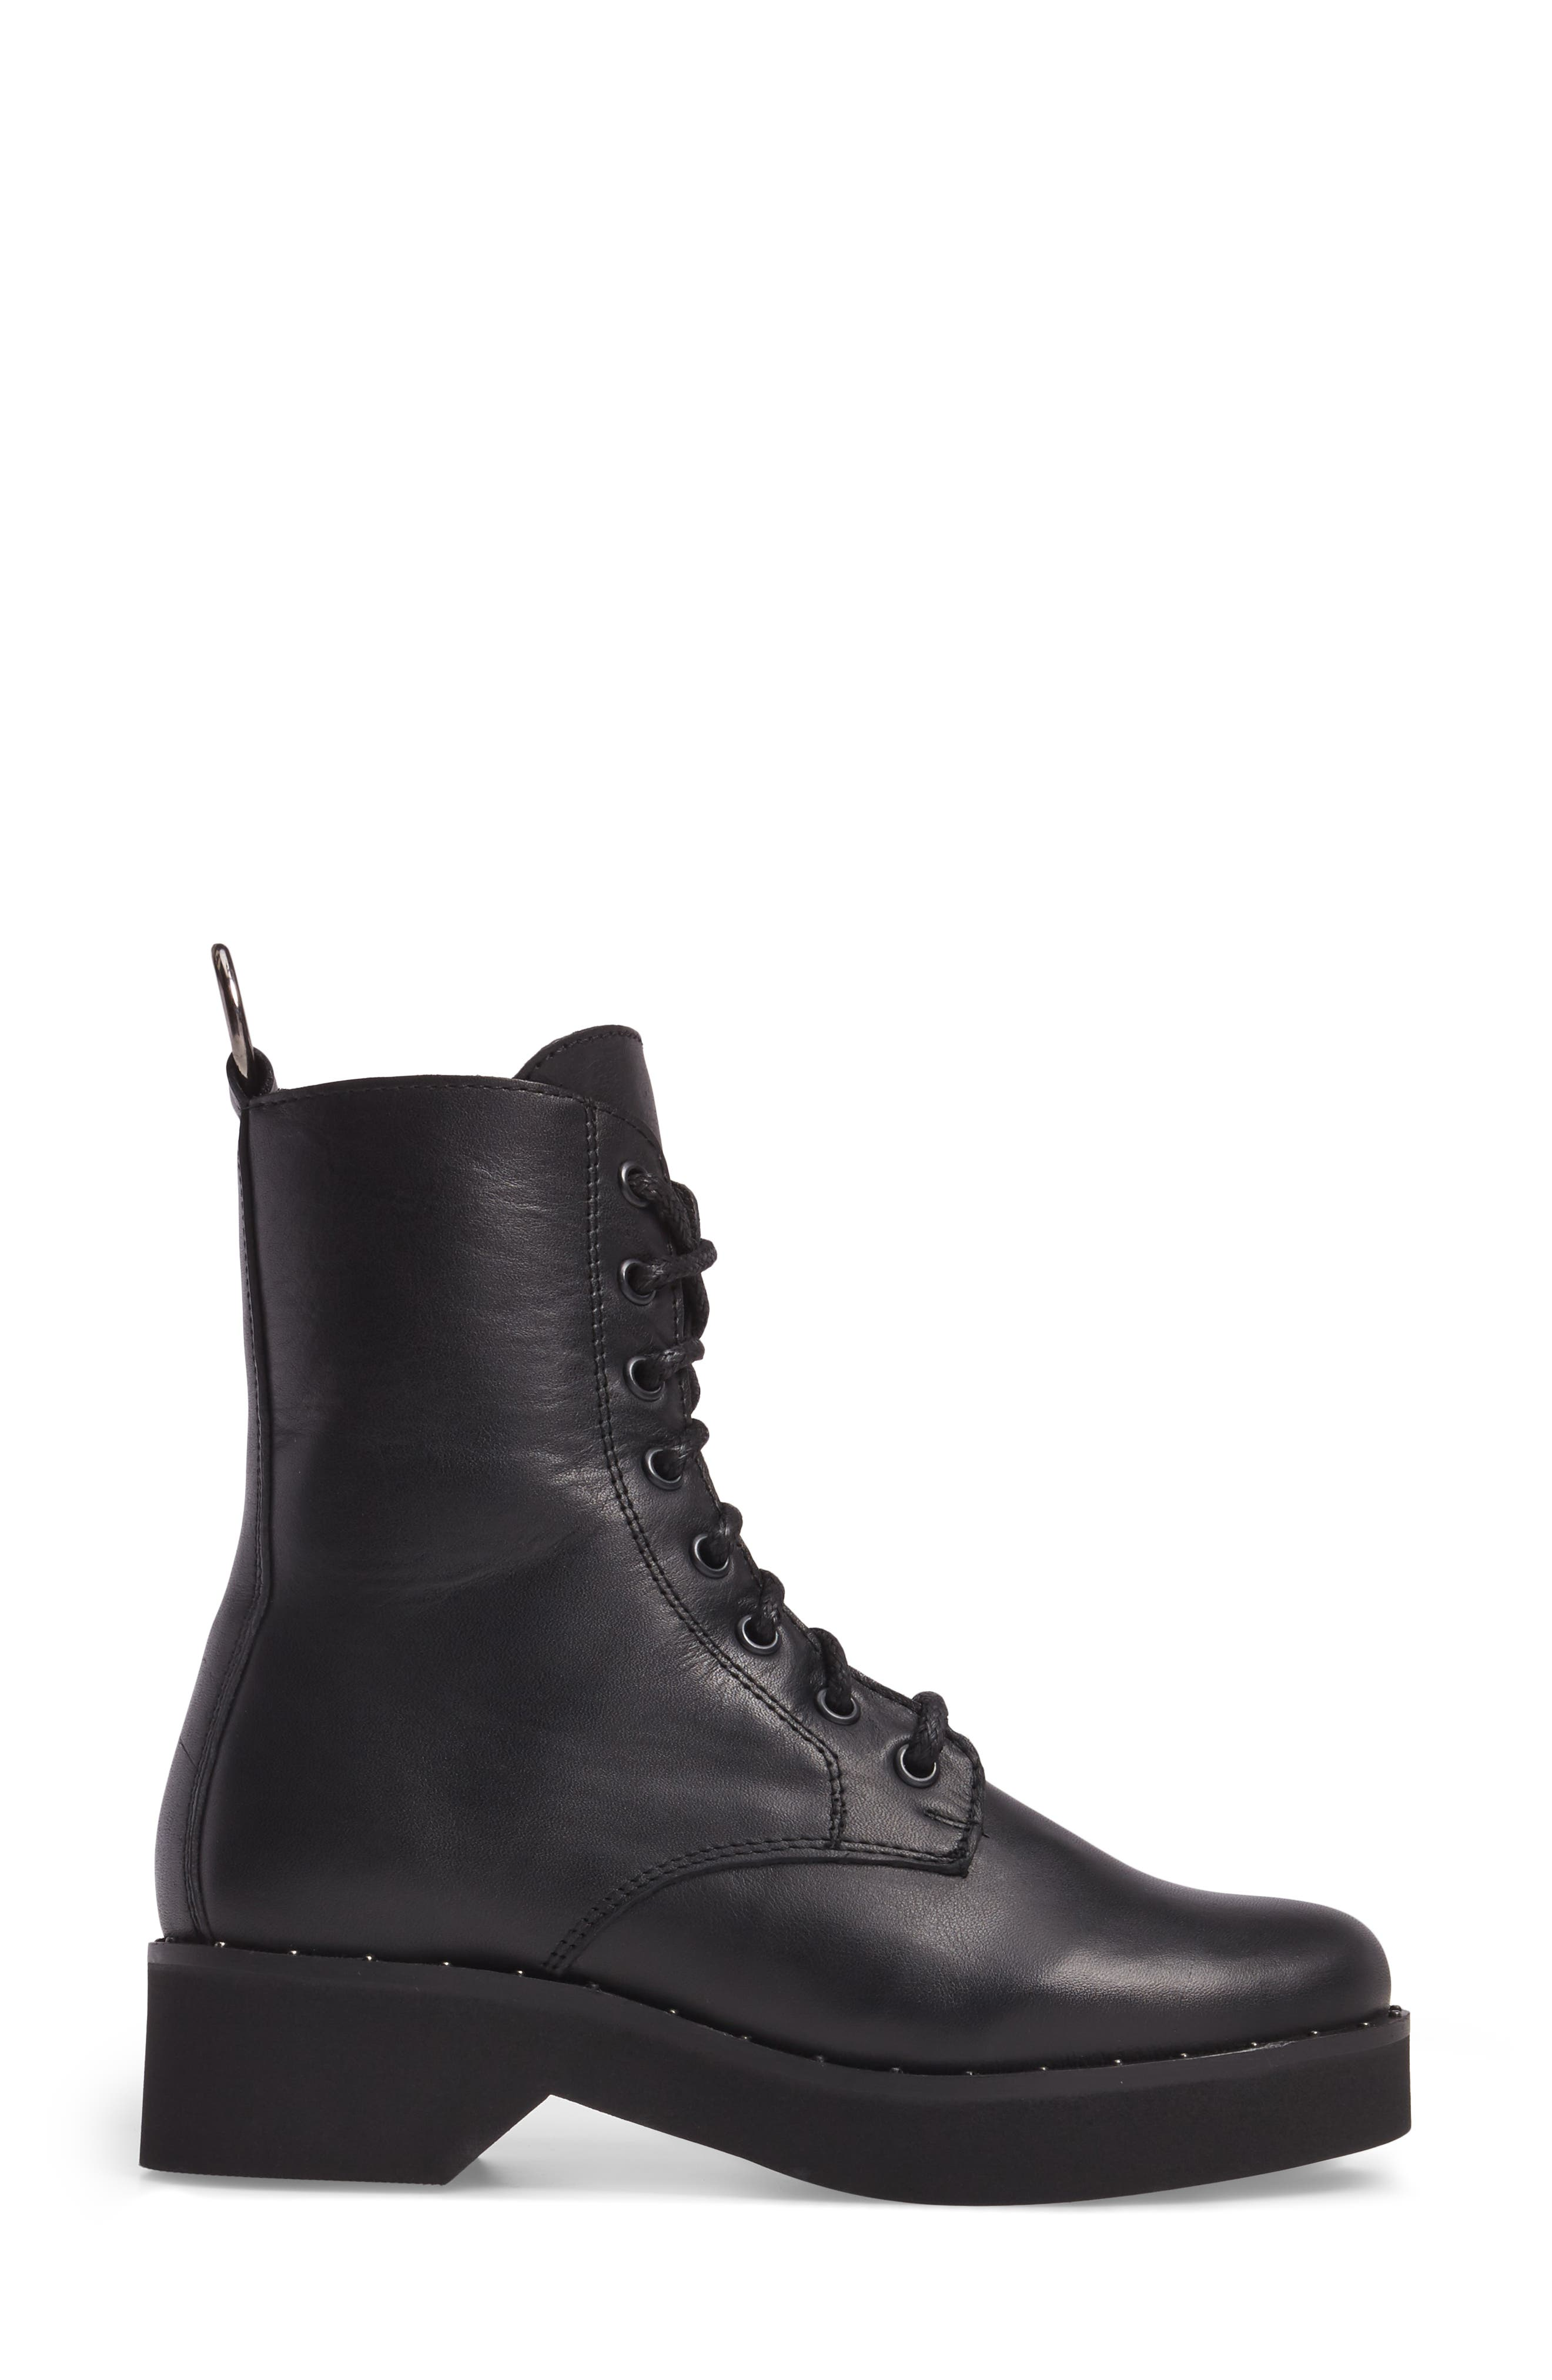 Rocco Combat Boot,                             Alternate thumbnail 3, color,                             001